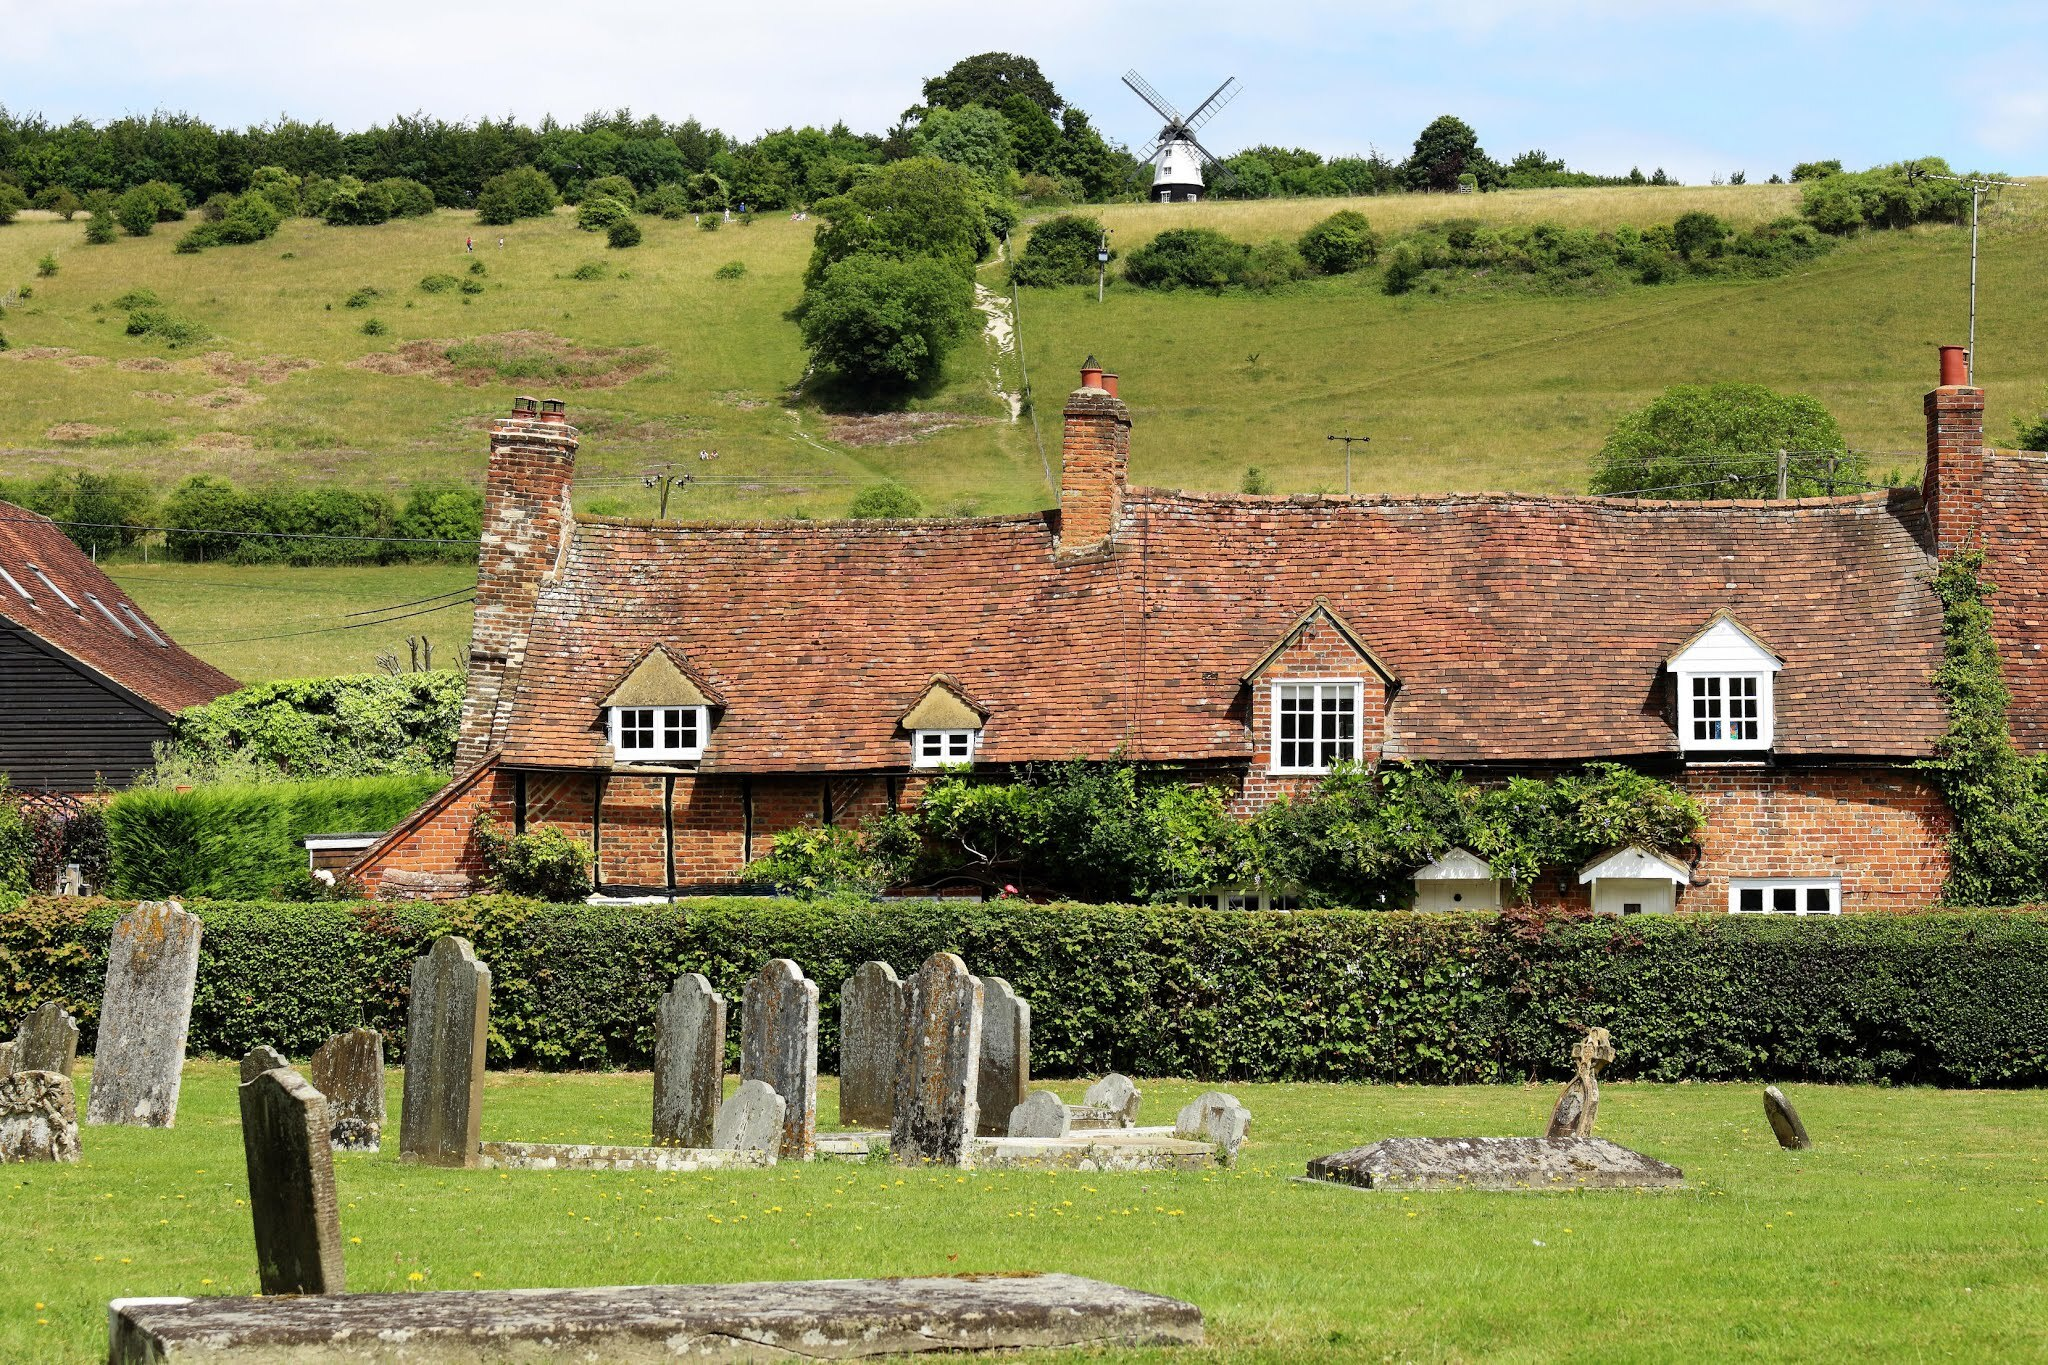 the churchyard in Turville Village in the Chiltern Hills